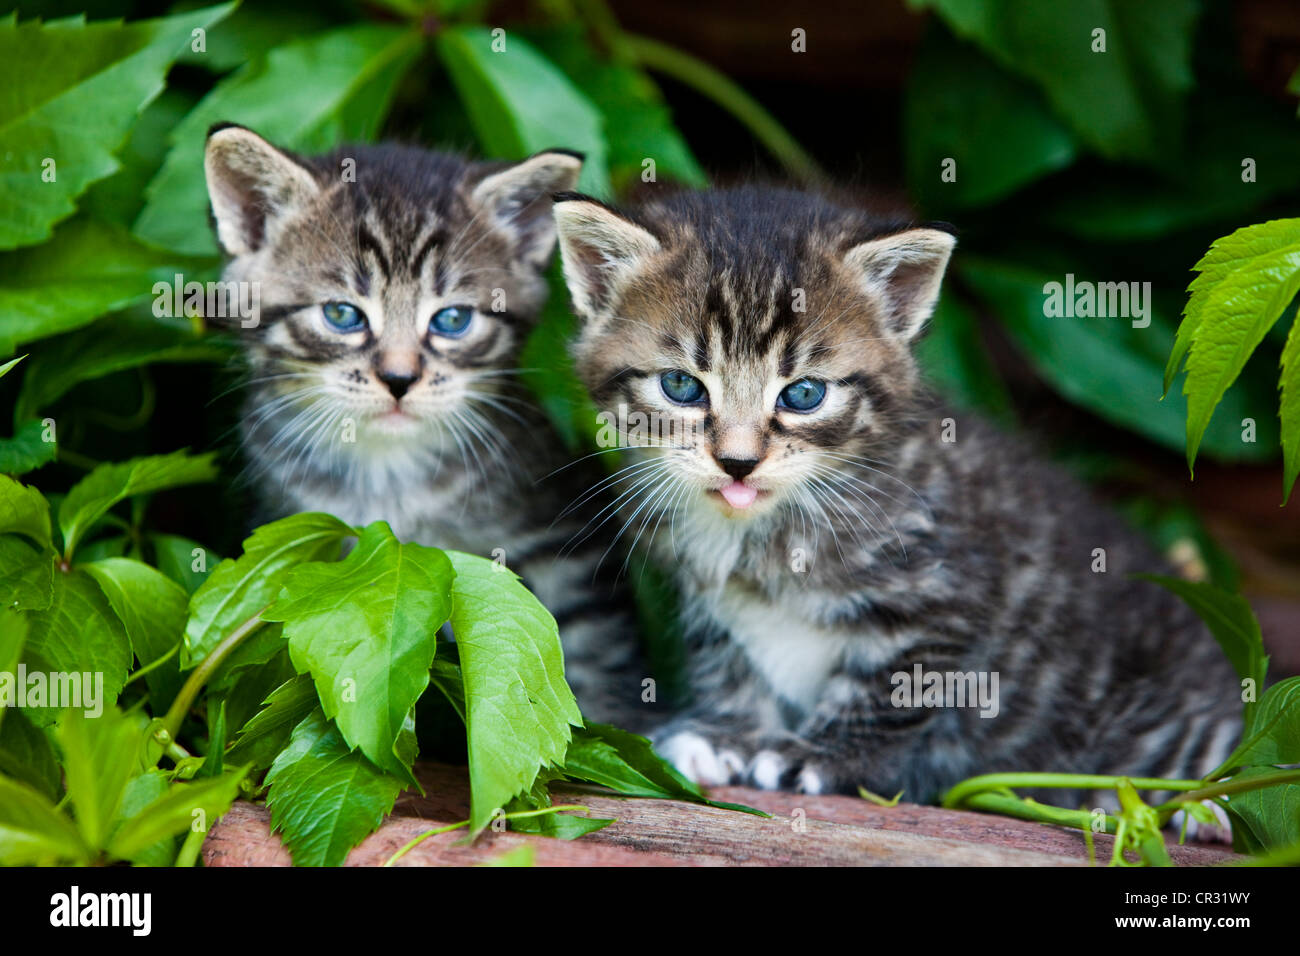 Two grey tabby domestic cats, kittens, North Tyrol, Austria, Europe - Stock Image